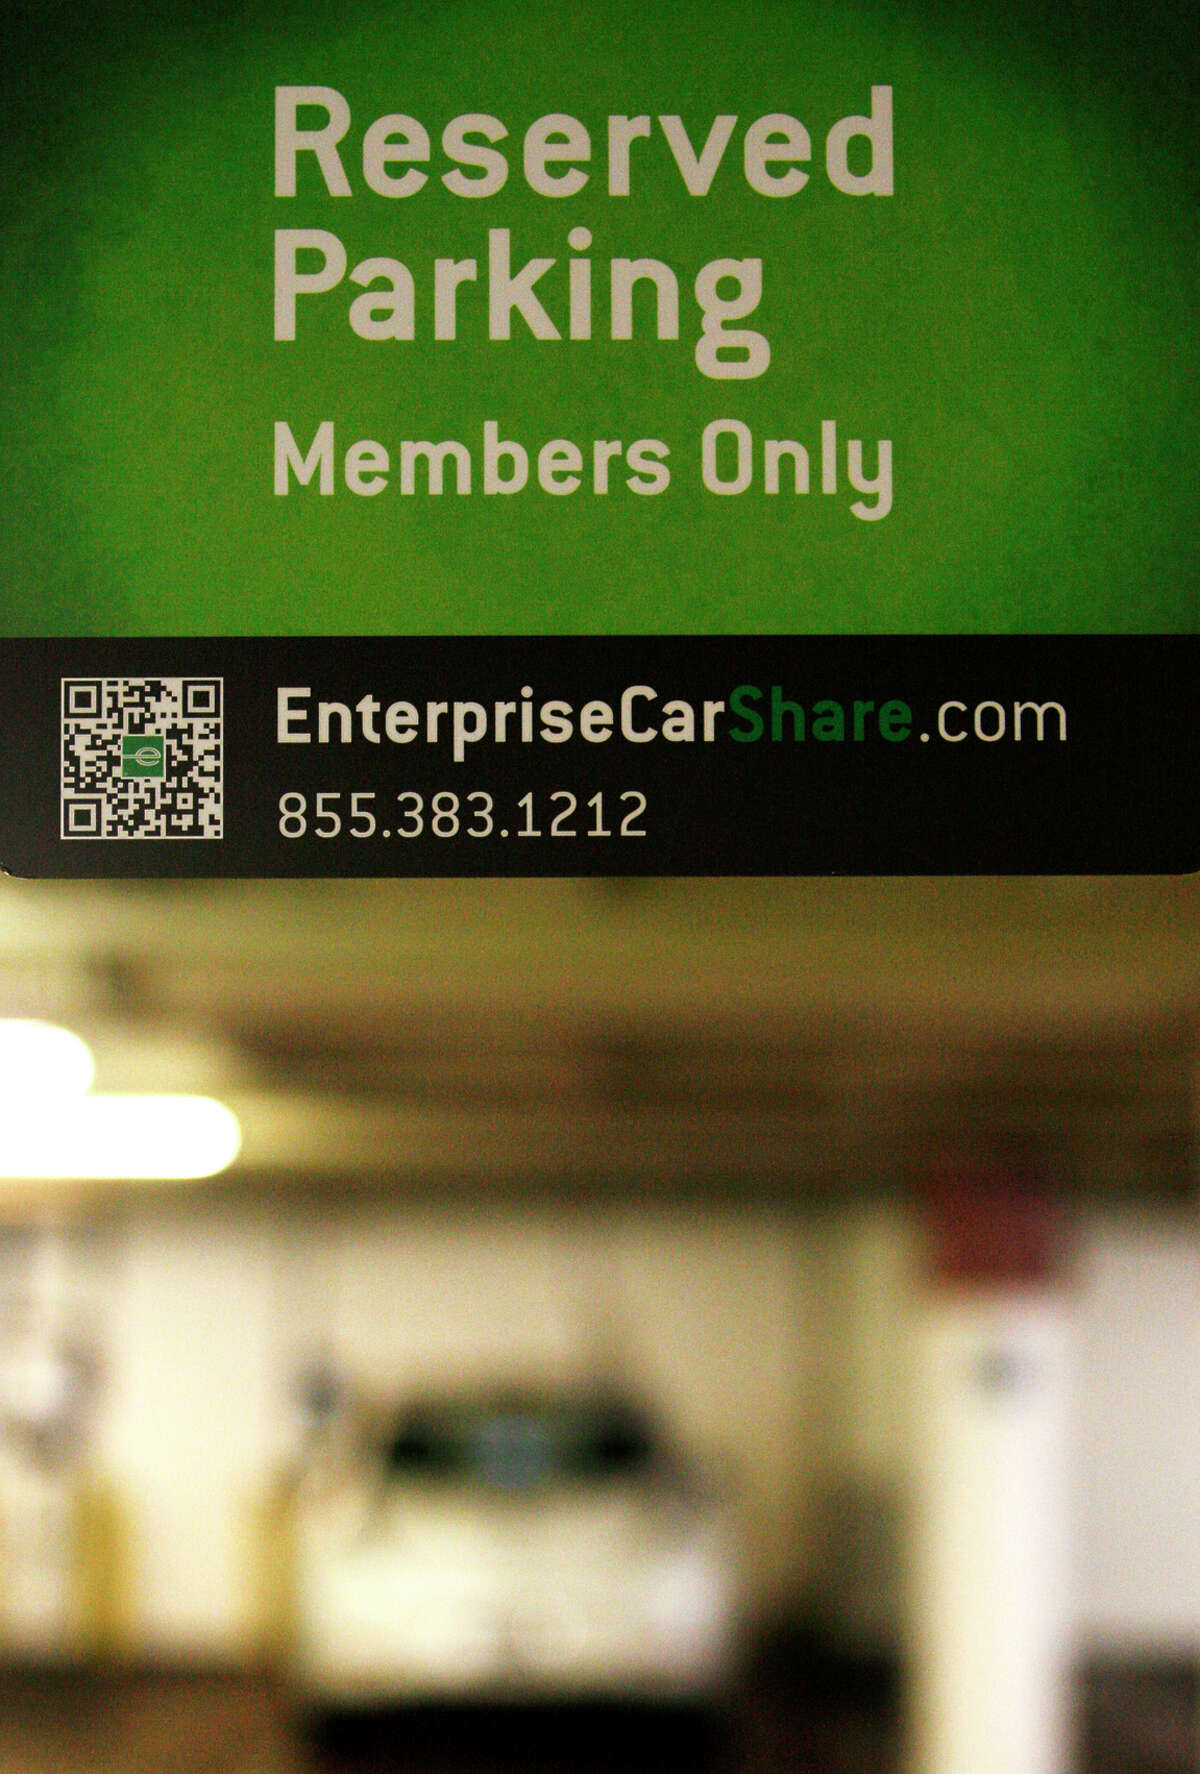 Enterprise uses St. Mary's Square Garage as a pickup and drop-off point for its CarShare vehicles. It is the latest service to begin operation in San Francisco.